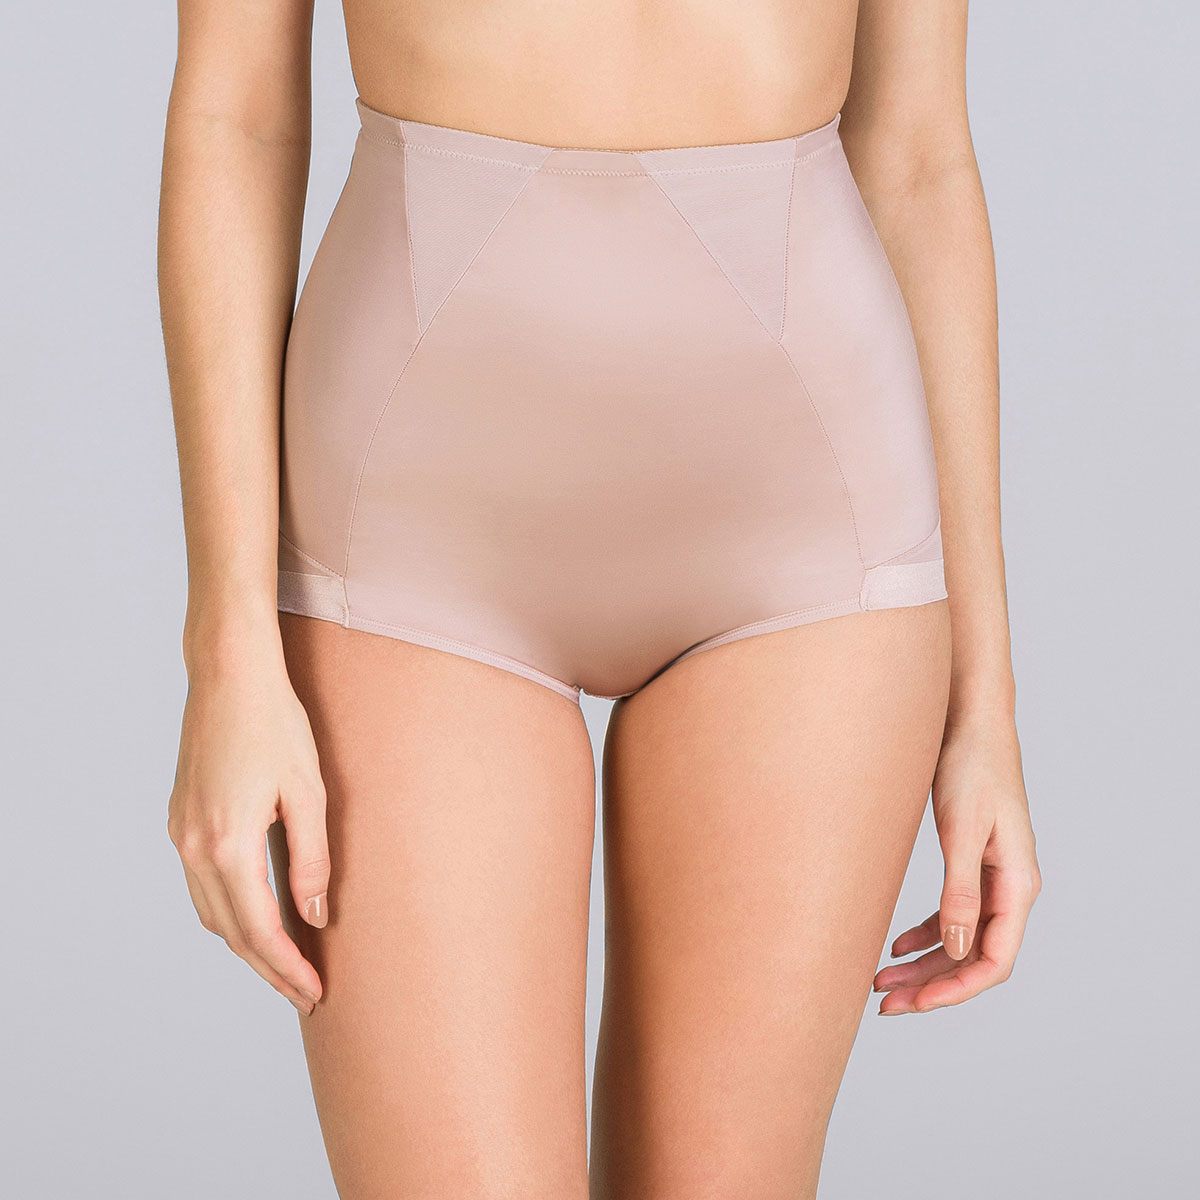 Gaine serre-taille beige - Perfect Silhouette-PLAYTEX